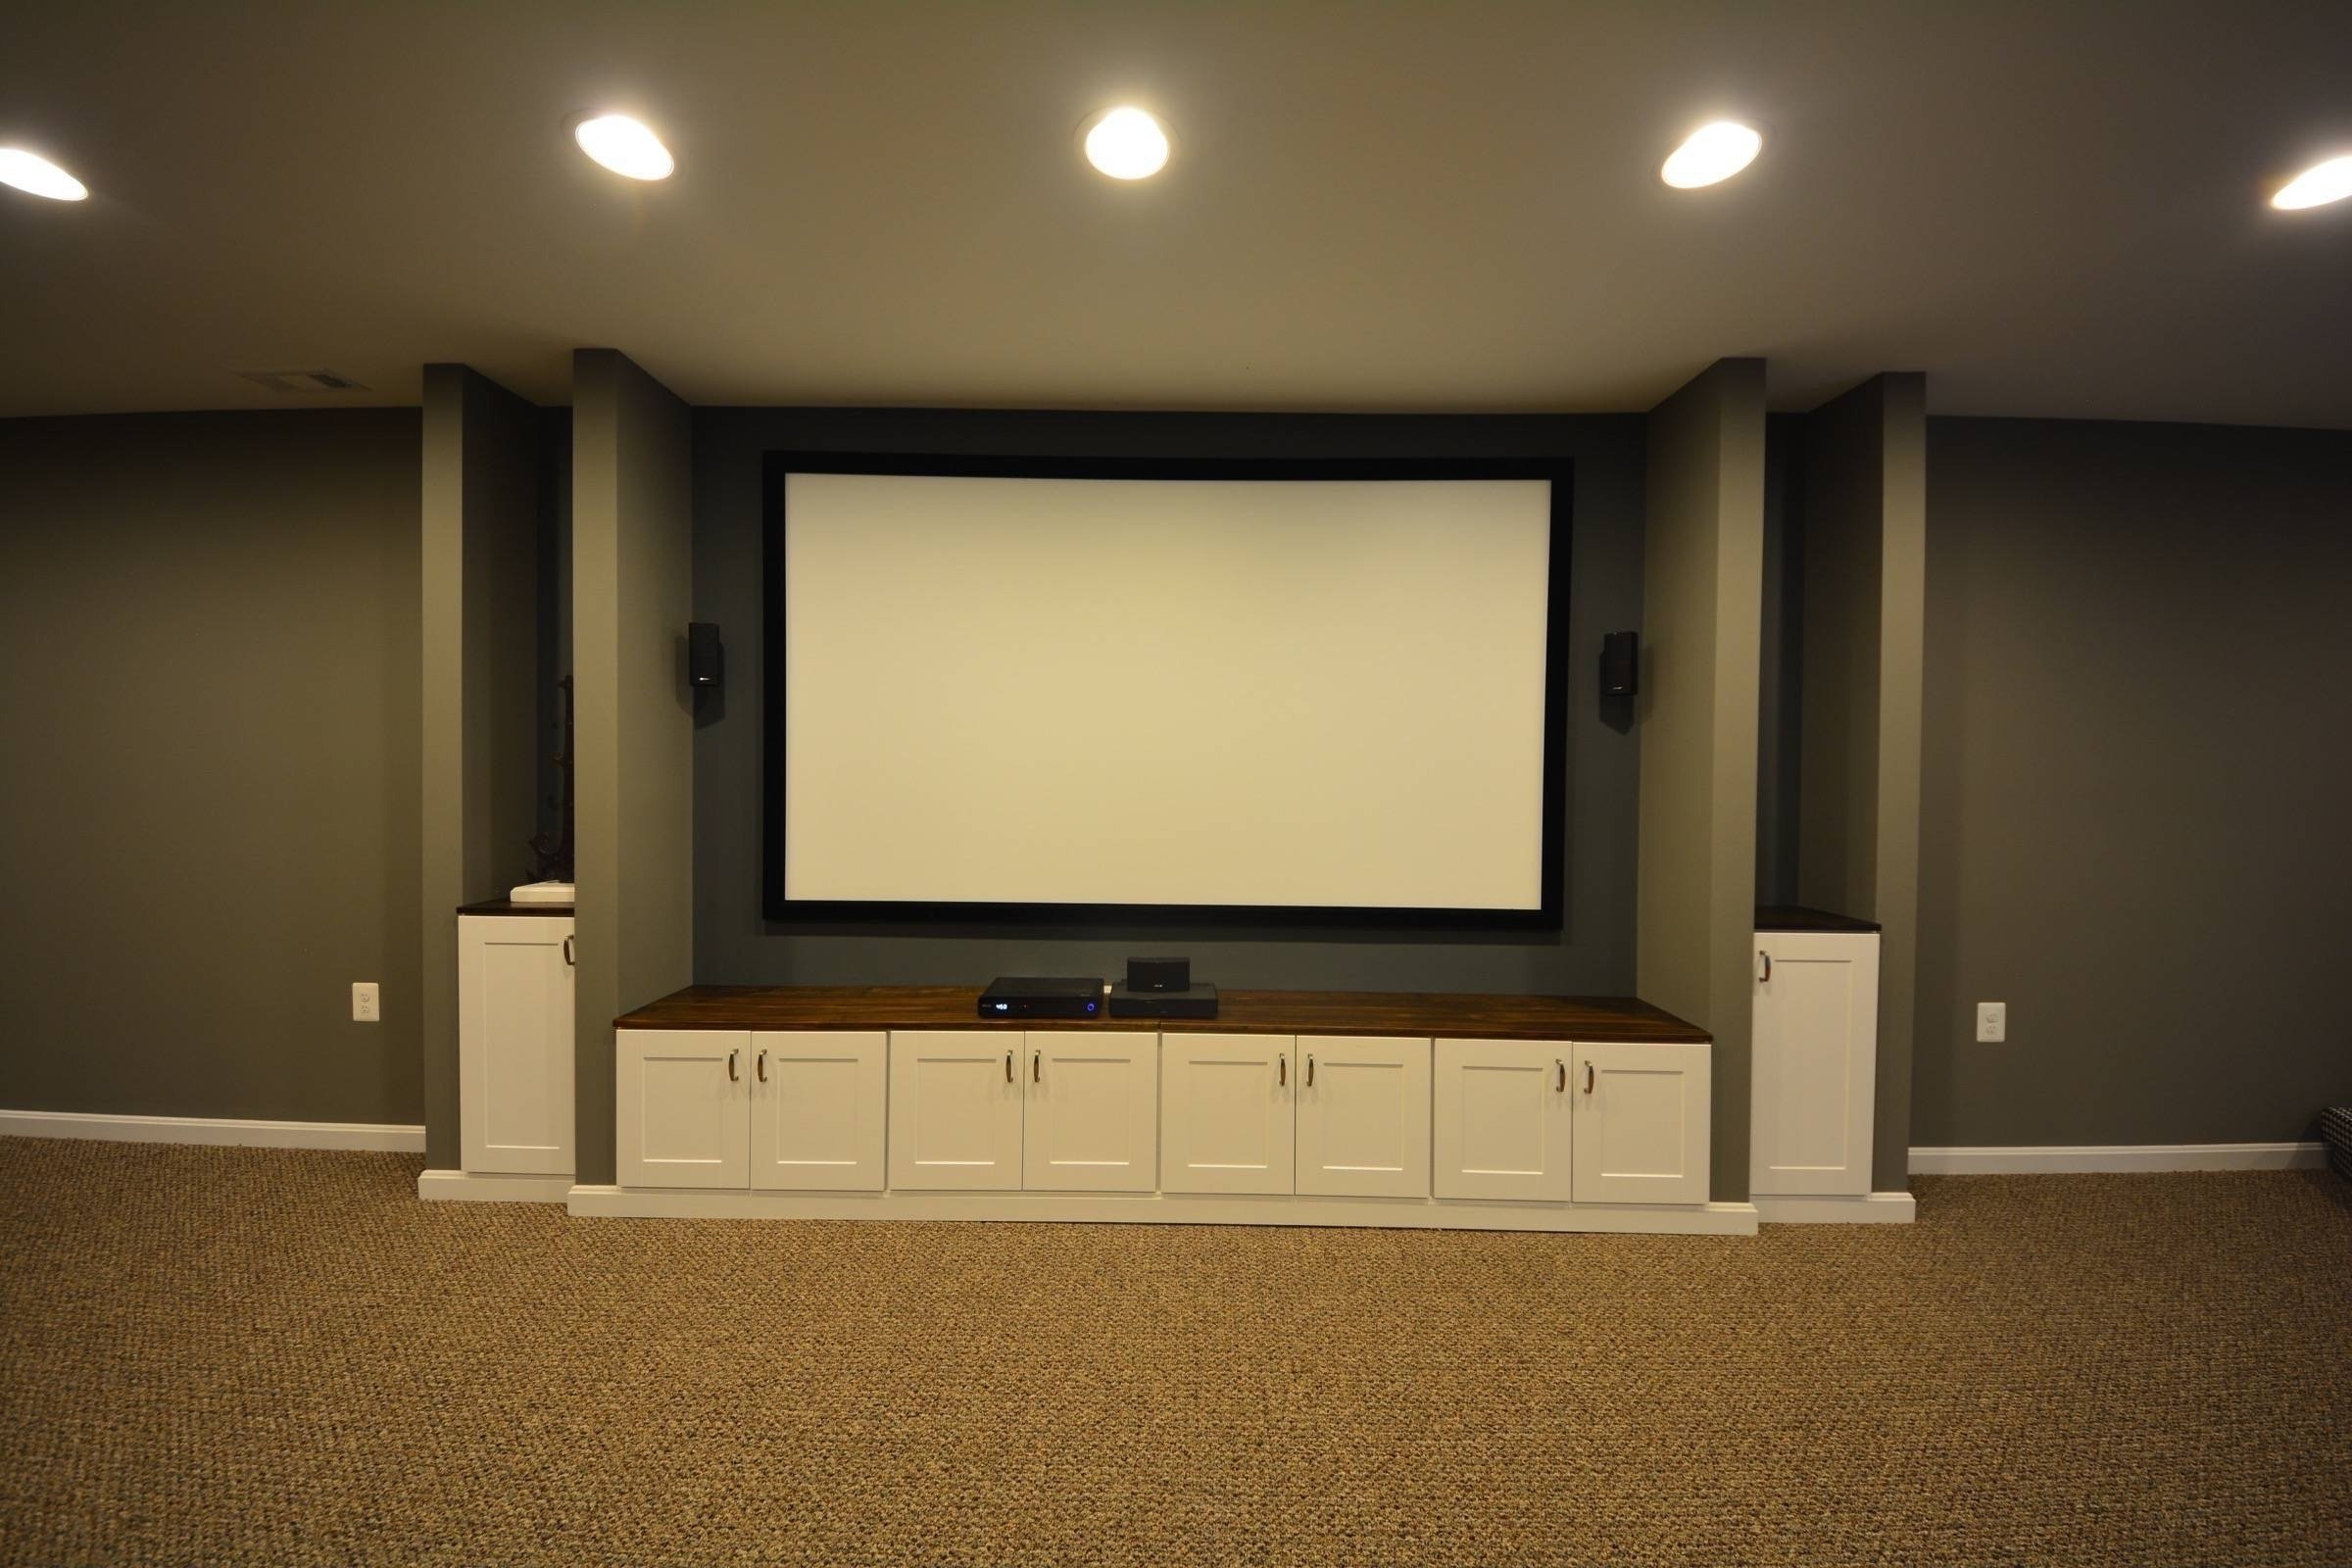 10 Awesome Built In Entertainment Center Ideas basement entertainment center ideas basement masters